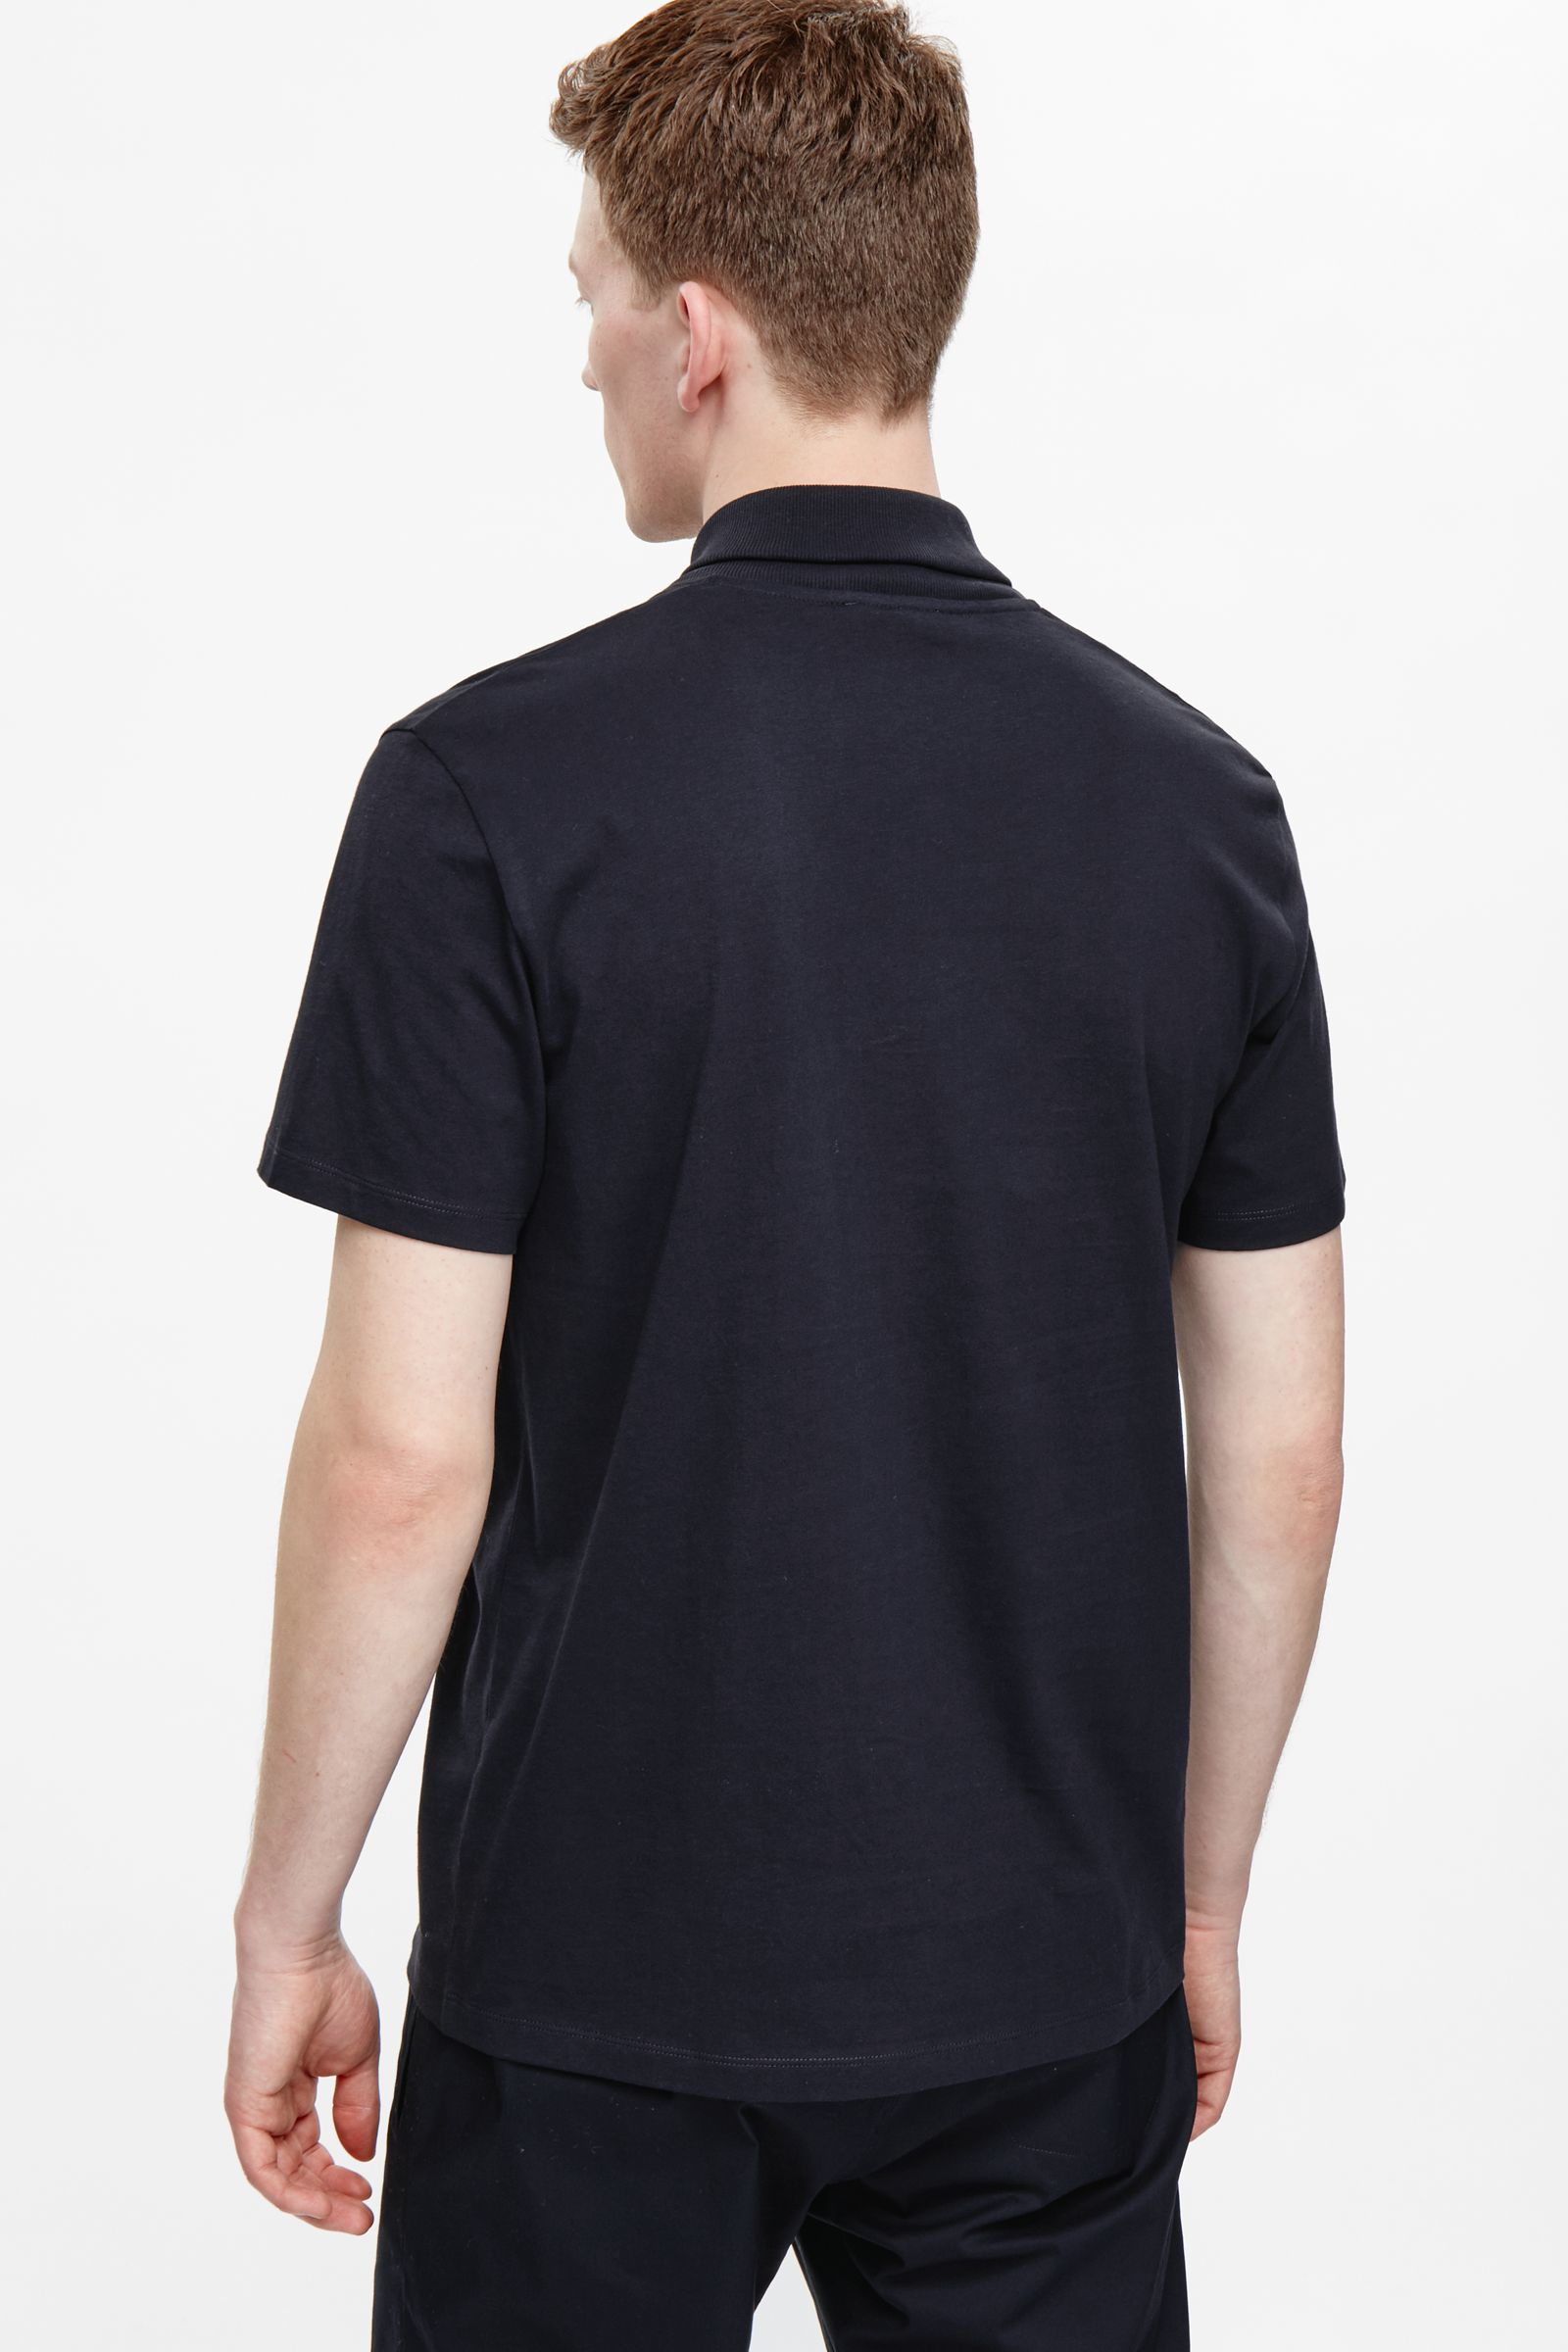 Cos shawl collar t shirt in black for men indigo lyst for Shawl collar t shirt